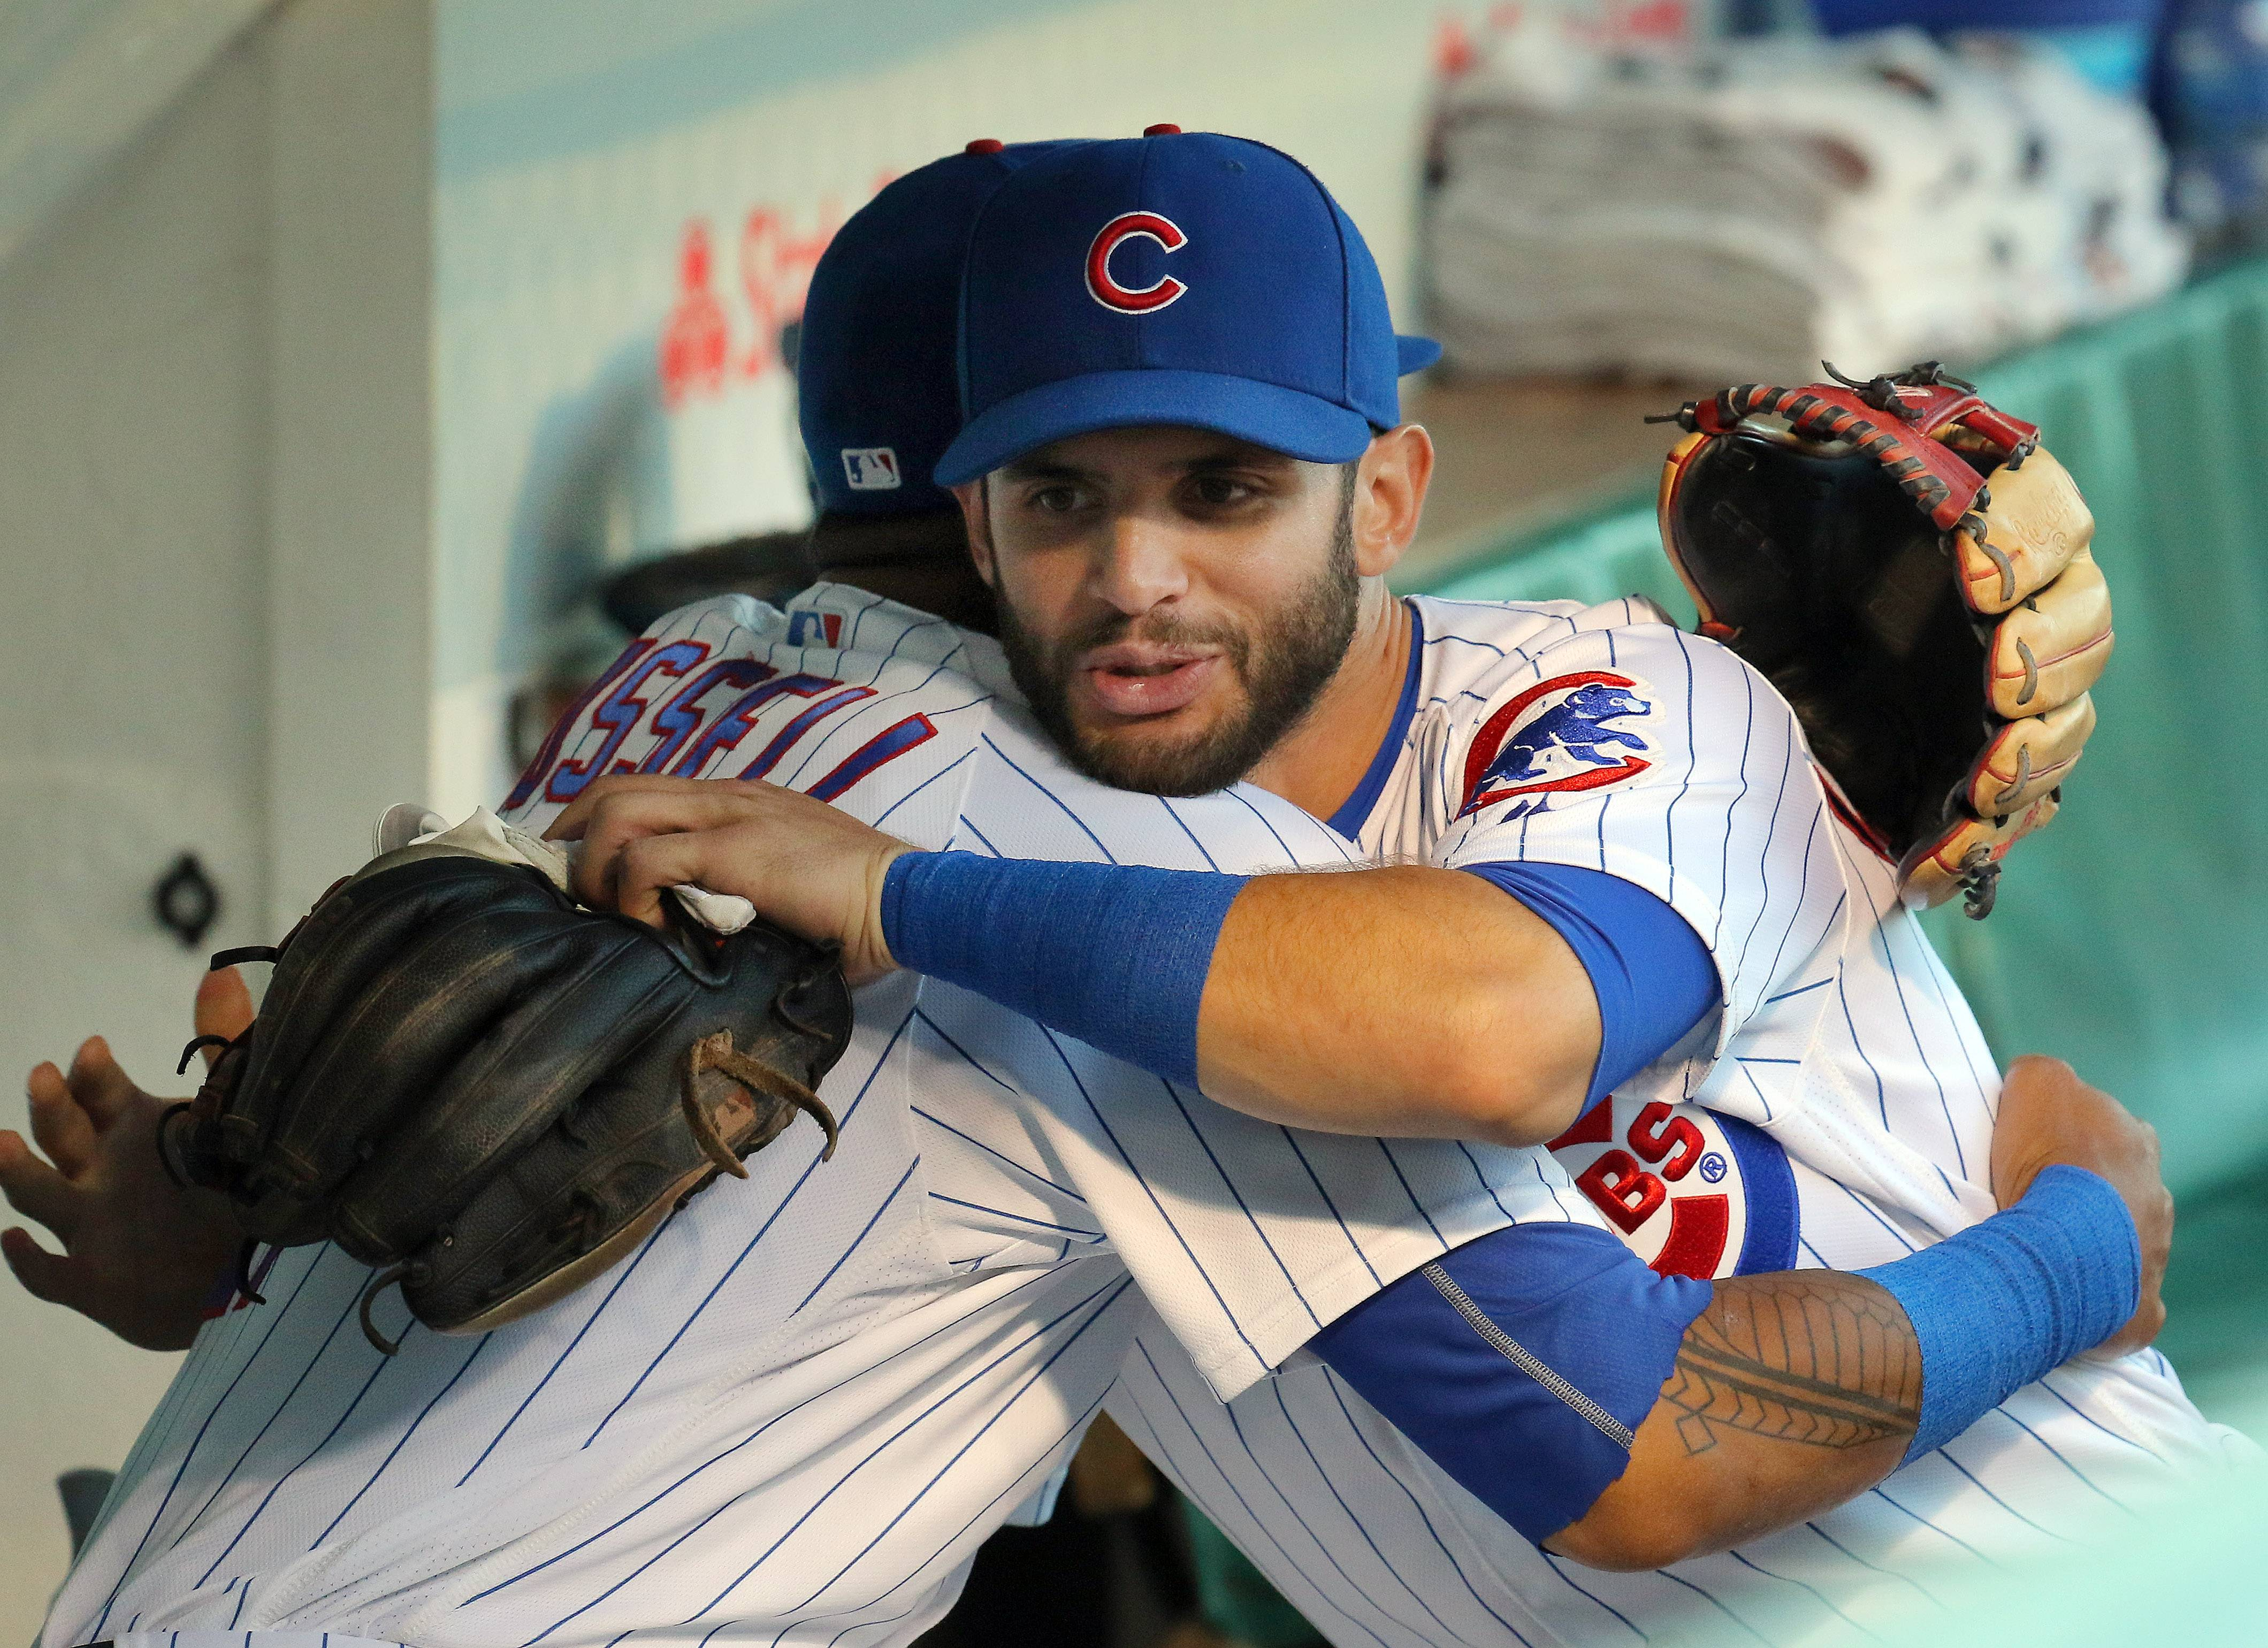 Steve Lundy/slundy@dailyherald.comChicago Cubs second baseman Tommy La Stella hugs Chicago Cubs shortstop Addison Russell on the bench during their game against the Pittsburg Pirates at Wrigley Field in Chicago Wednesday, August 31, 2016.